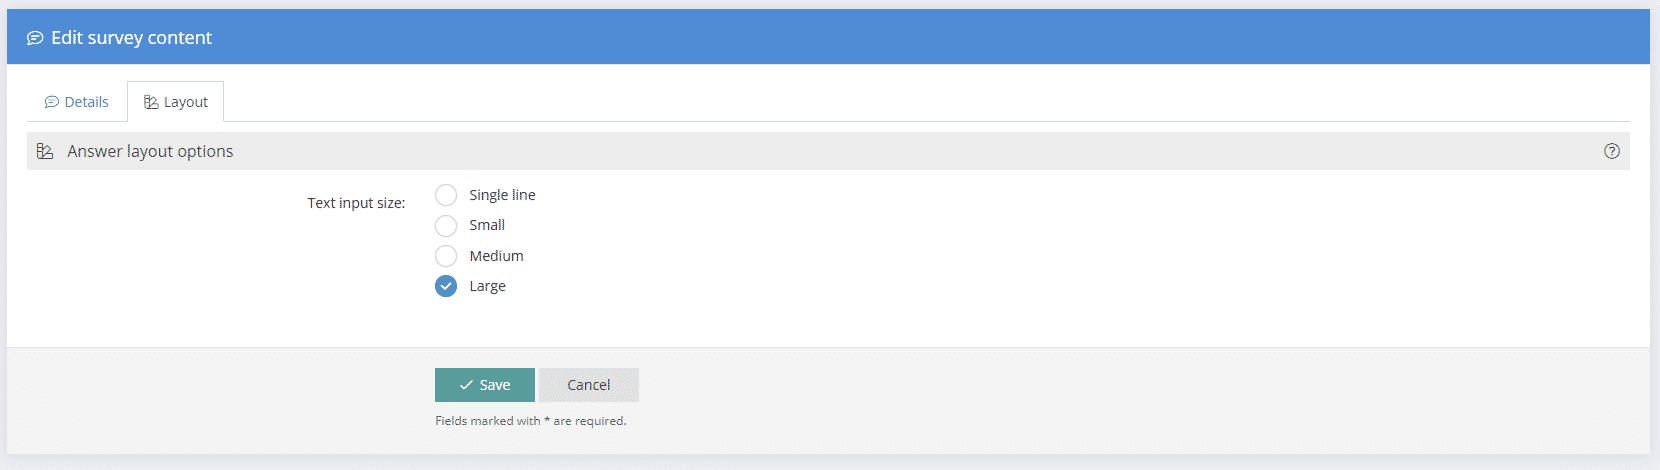 Free Text Question Layout